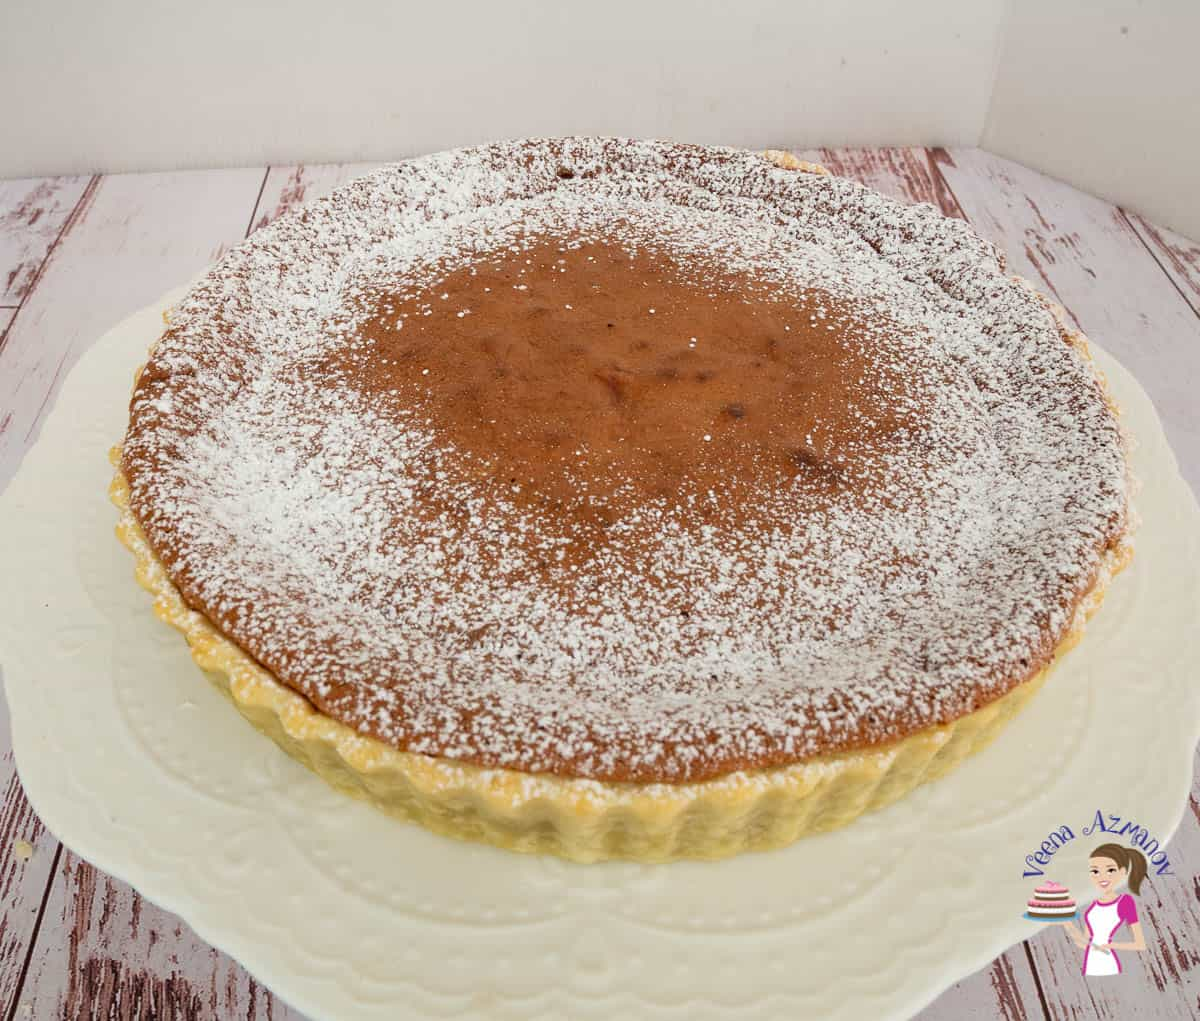 A chocolate soufflé tart.